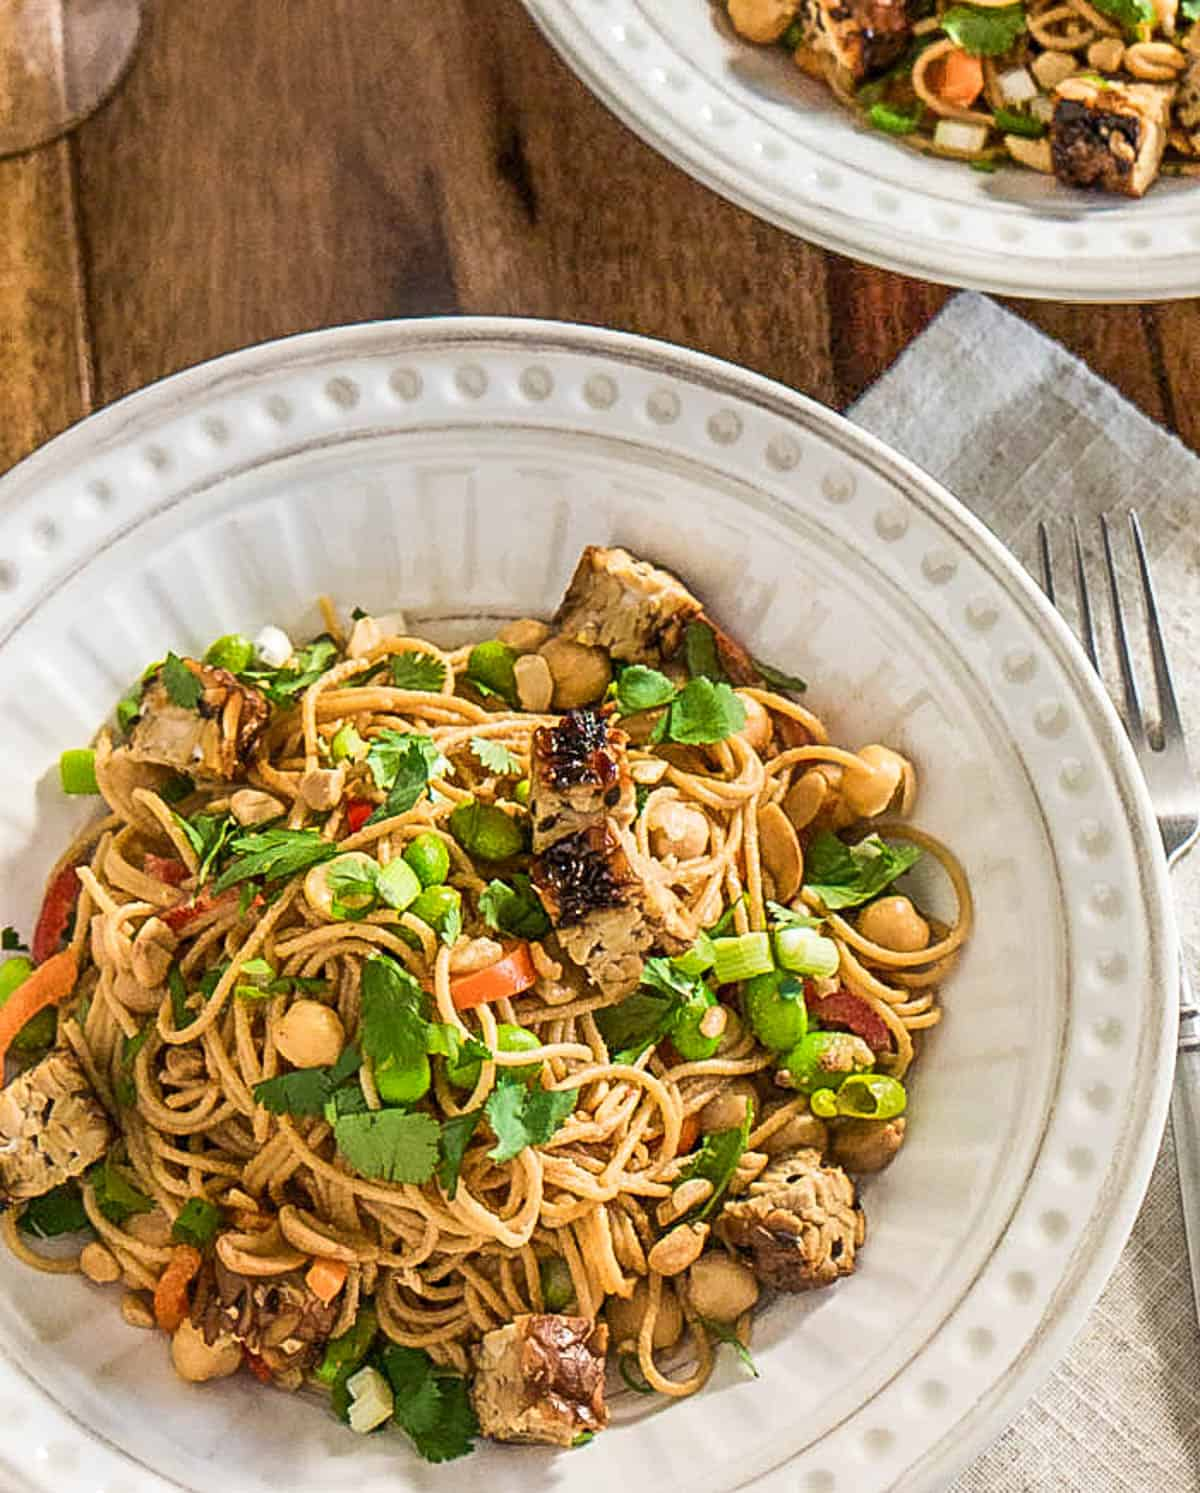 Spicy Sesame Noodles With Grilled Tempeh and Edamame